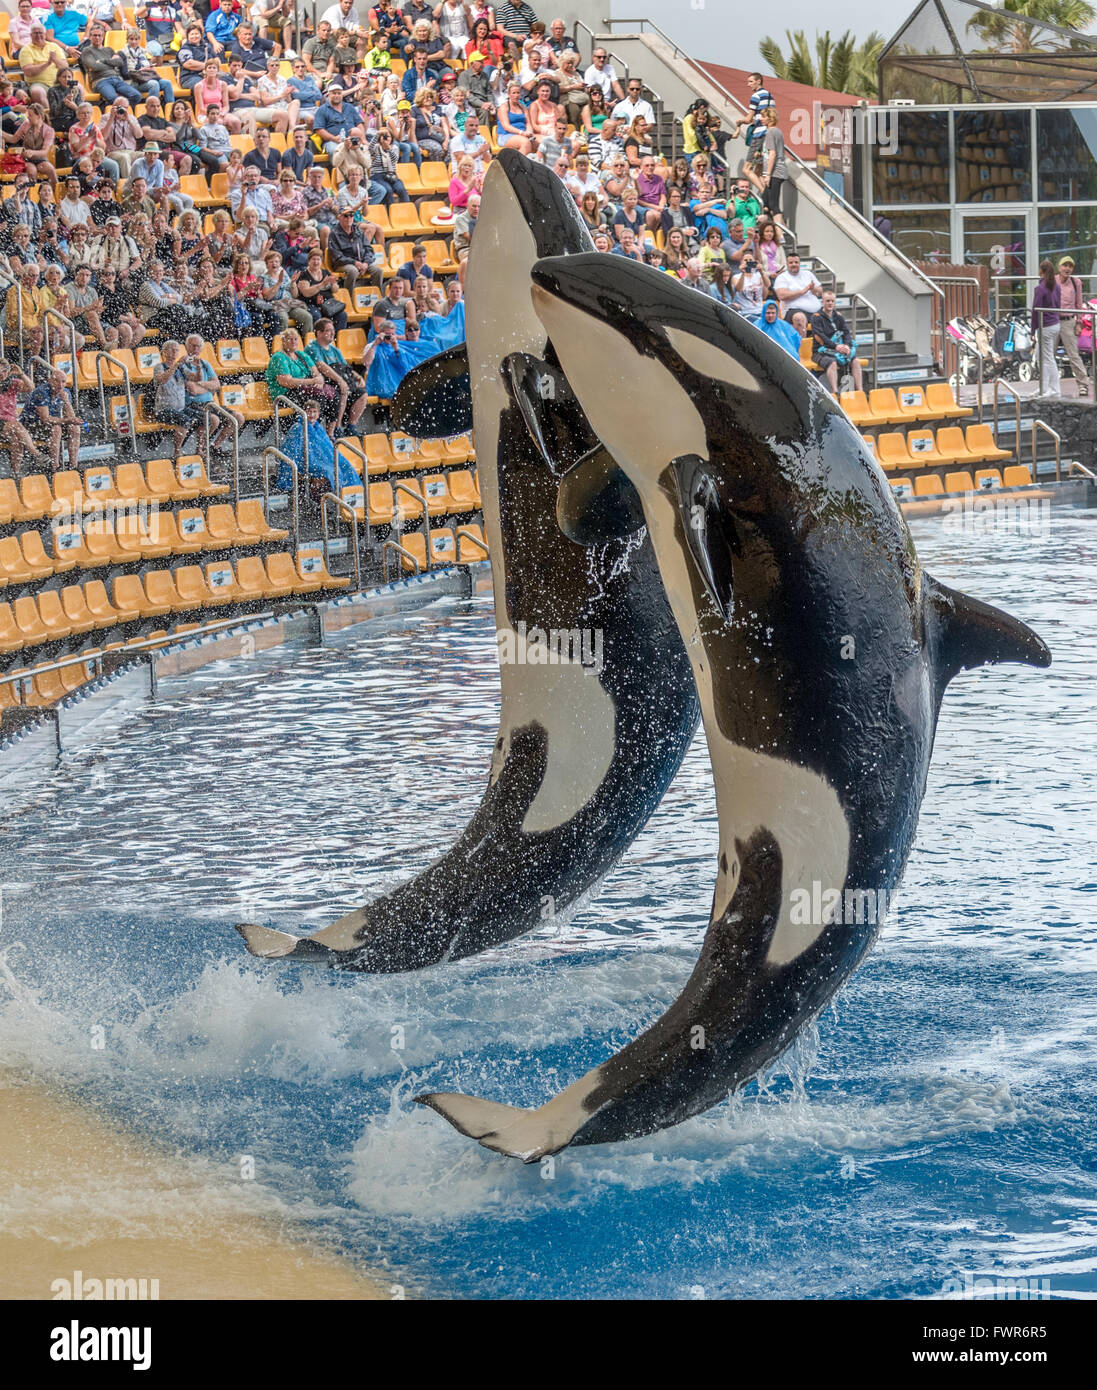 killer whales or orca (Orcinus orca) performing at Loro Parque, Tenerife - Stock Image